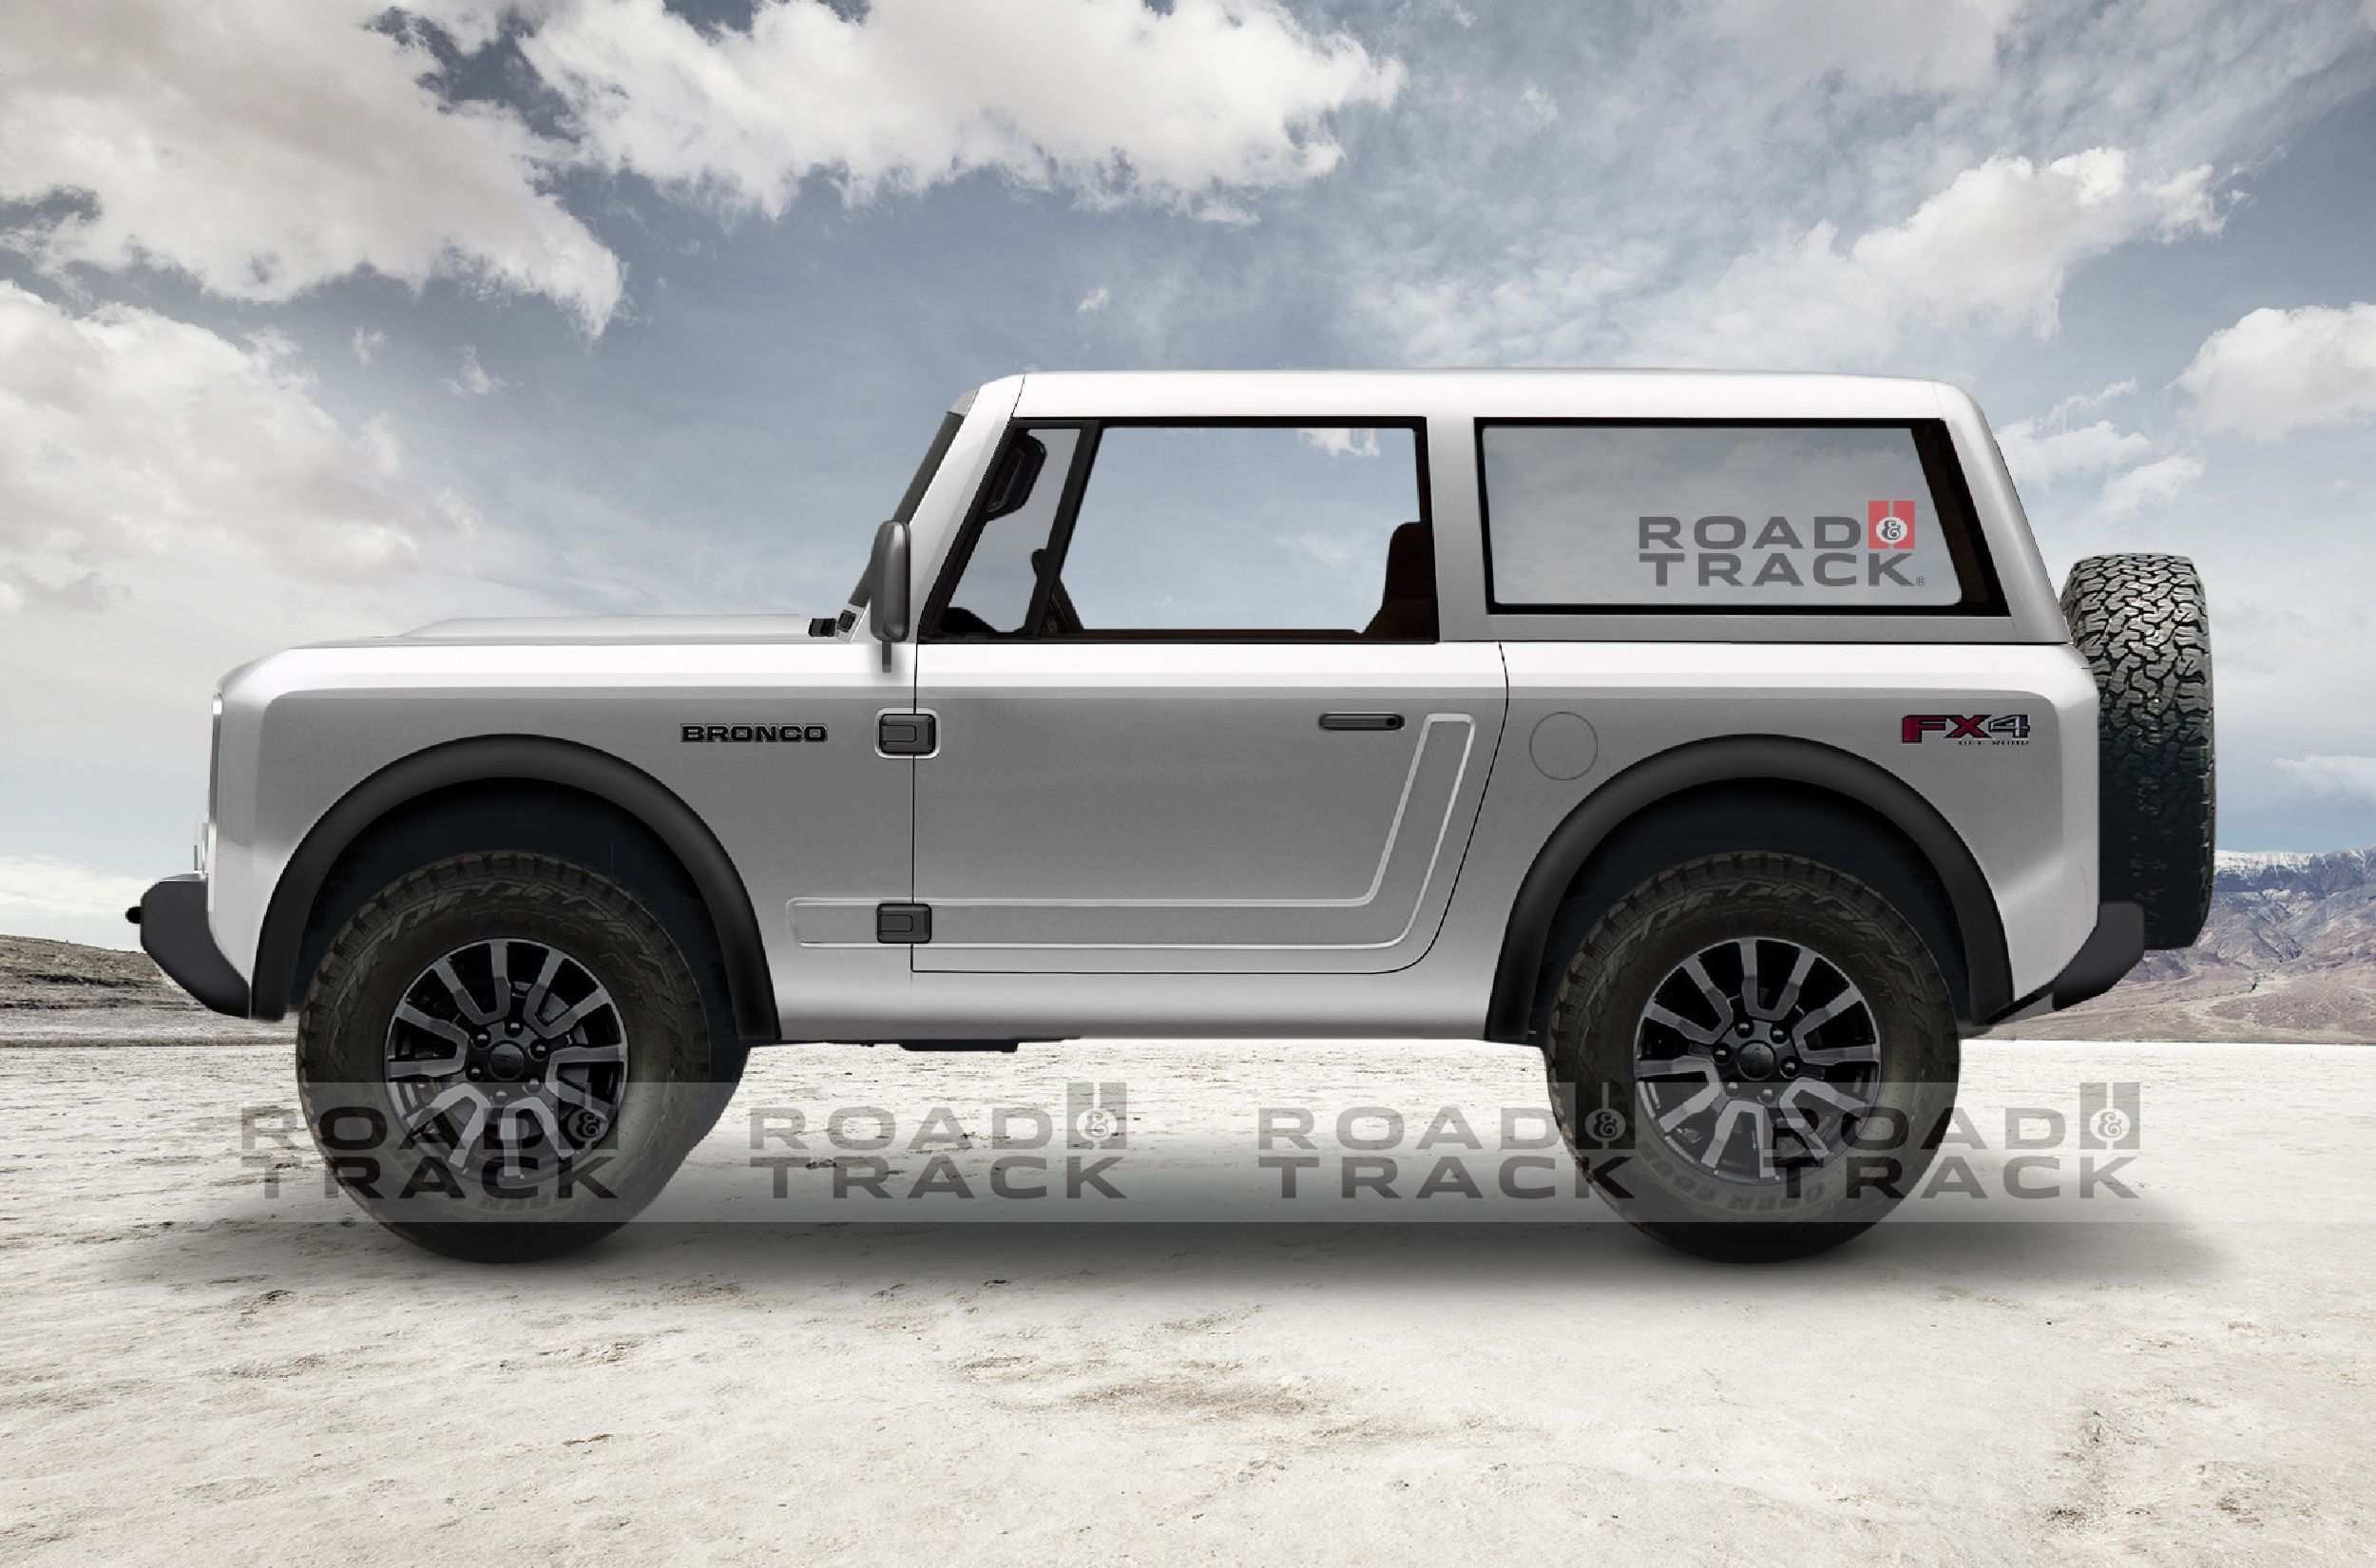 19 All New 2020 Bronco Pictures Images for 2020 Bronco Pictures